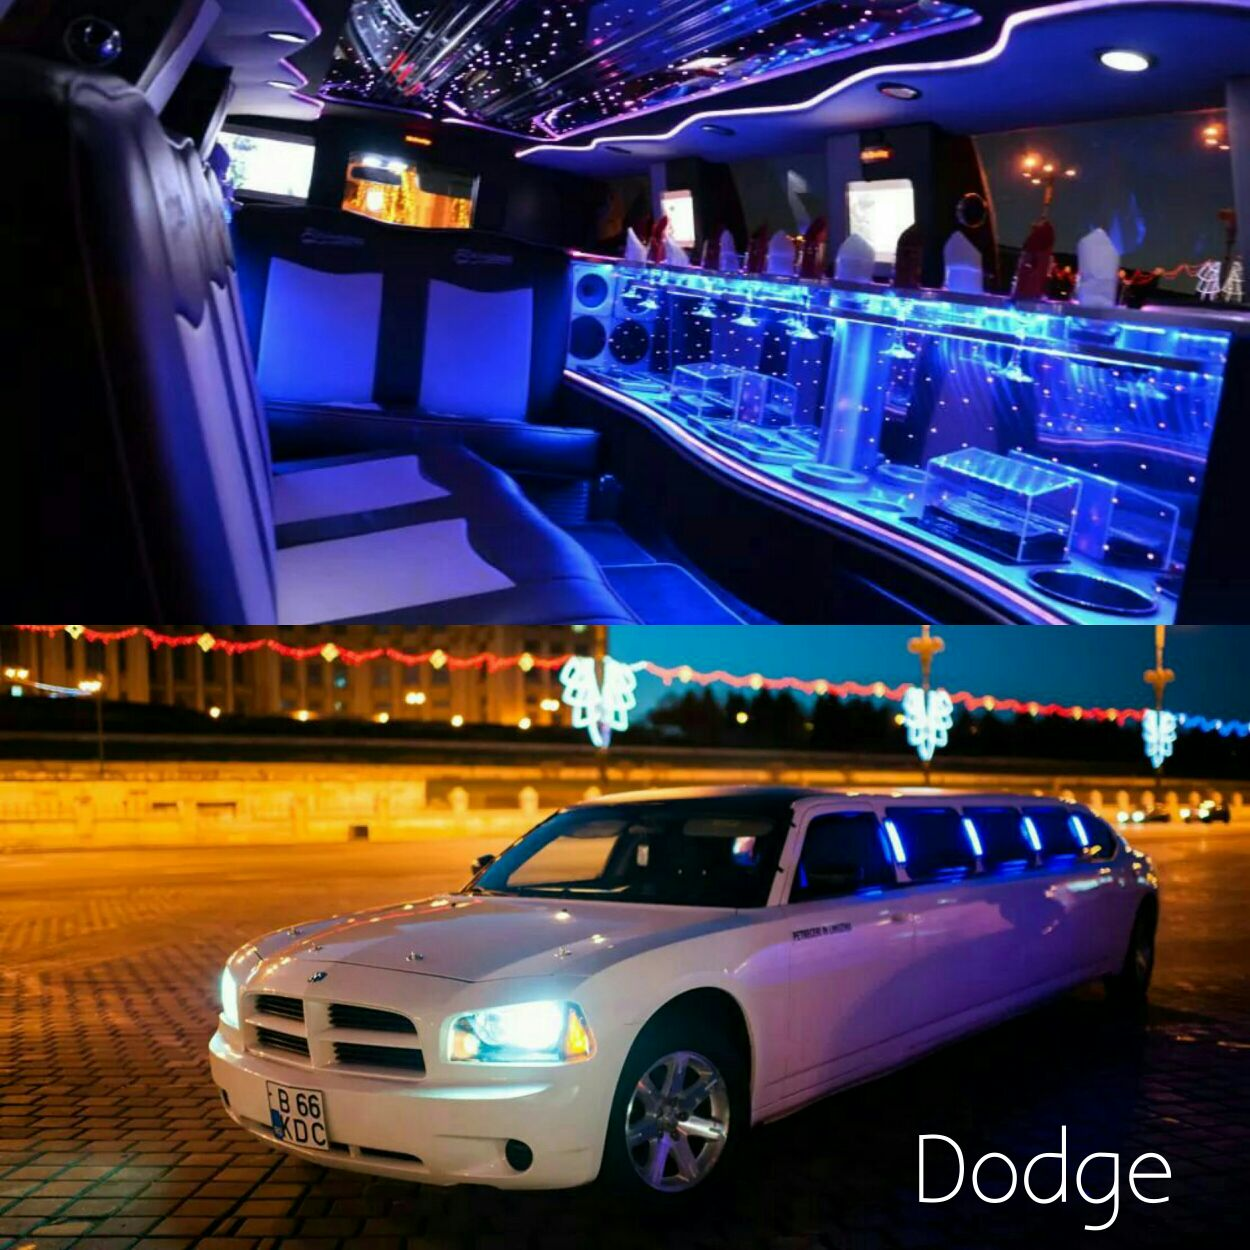 Limousine dodge in romania